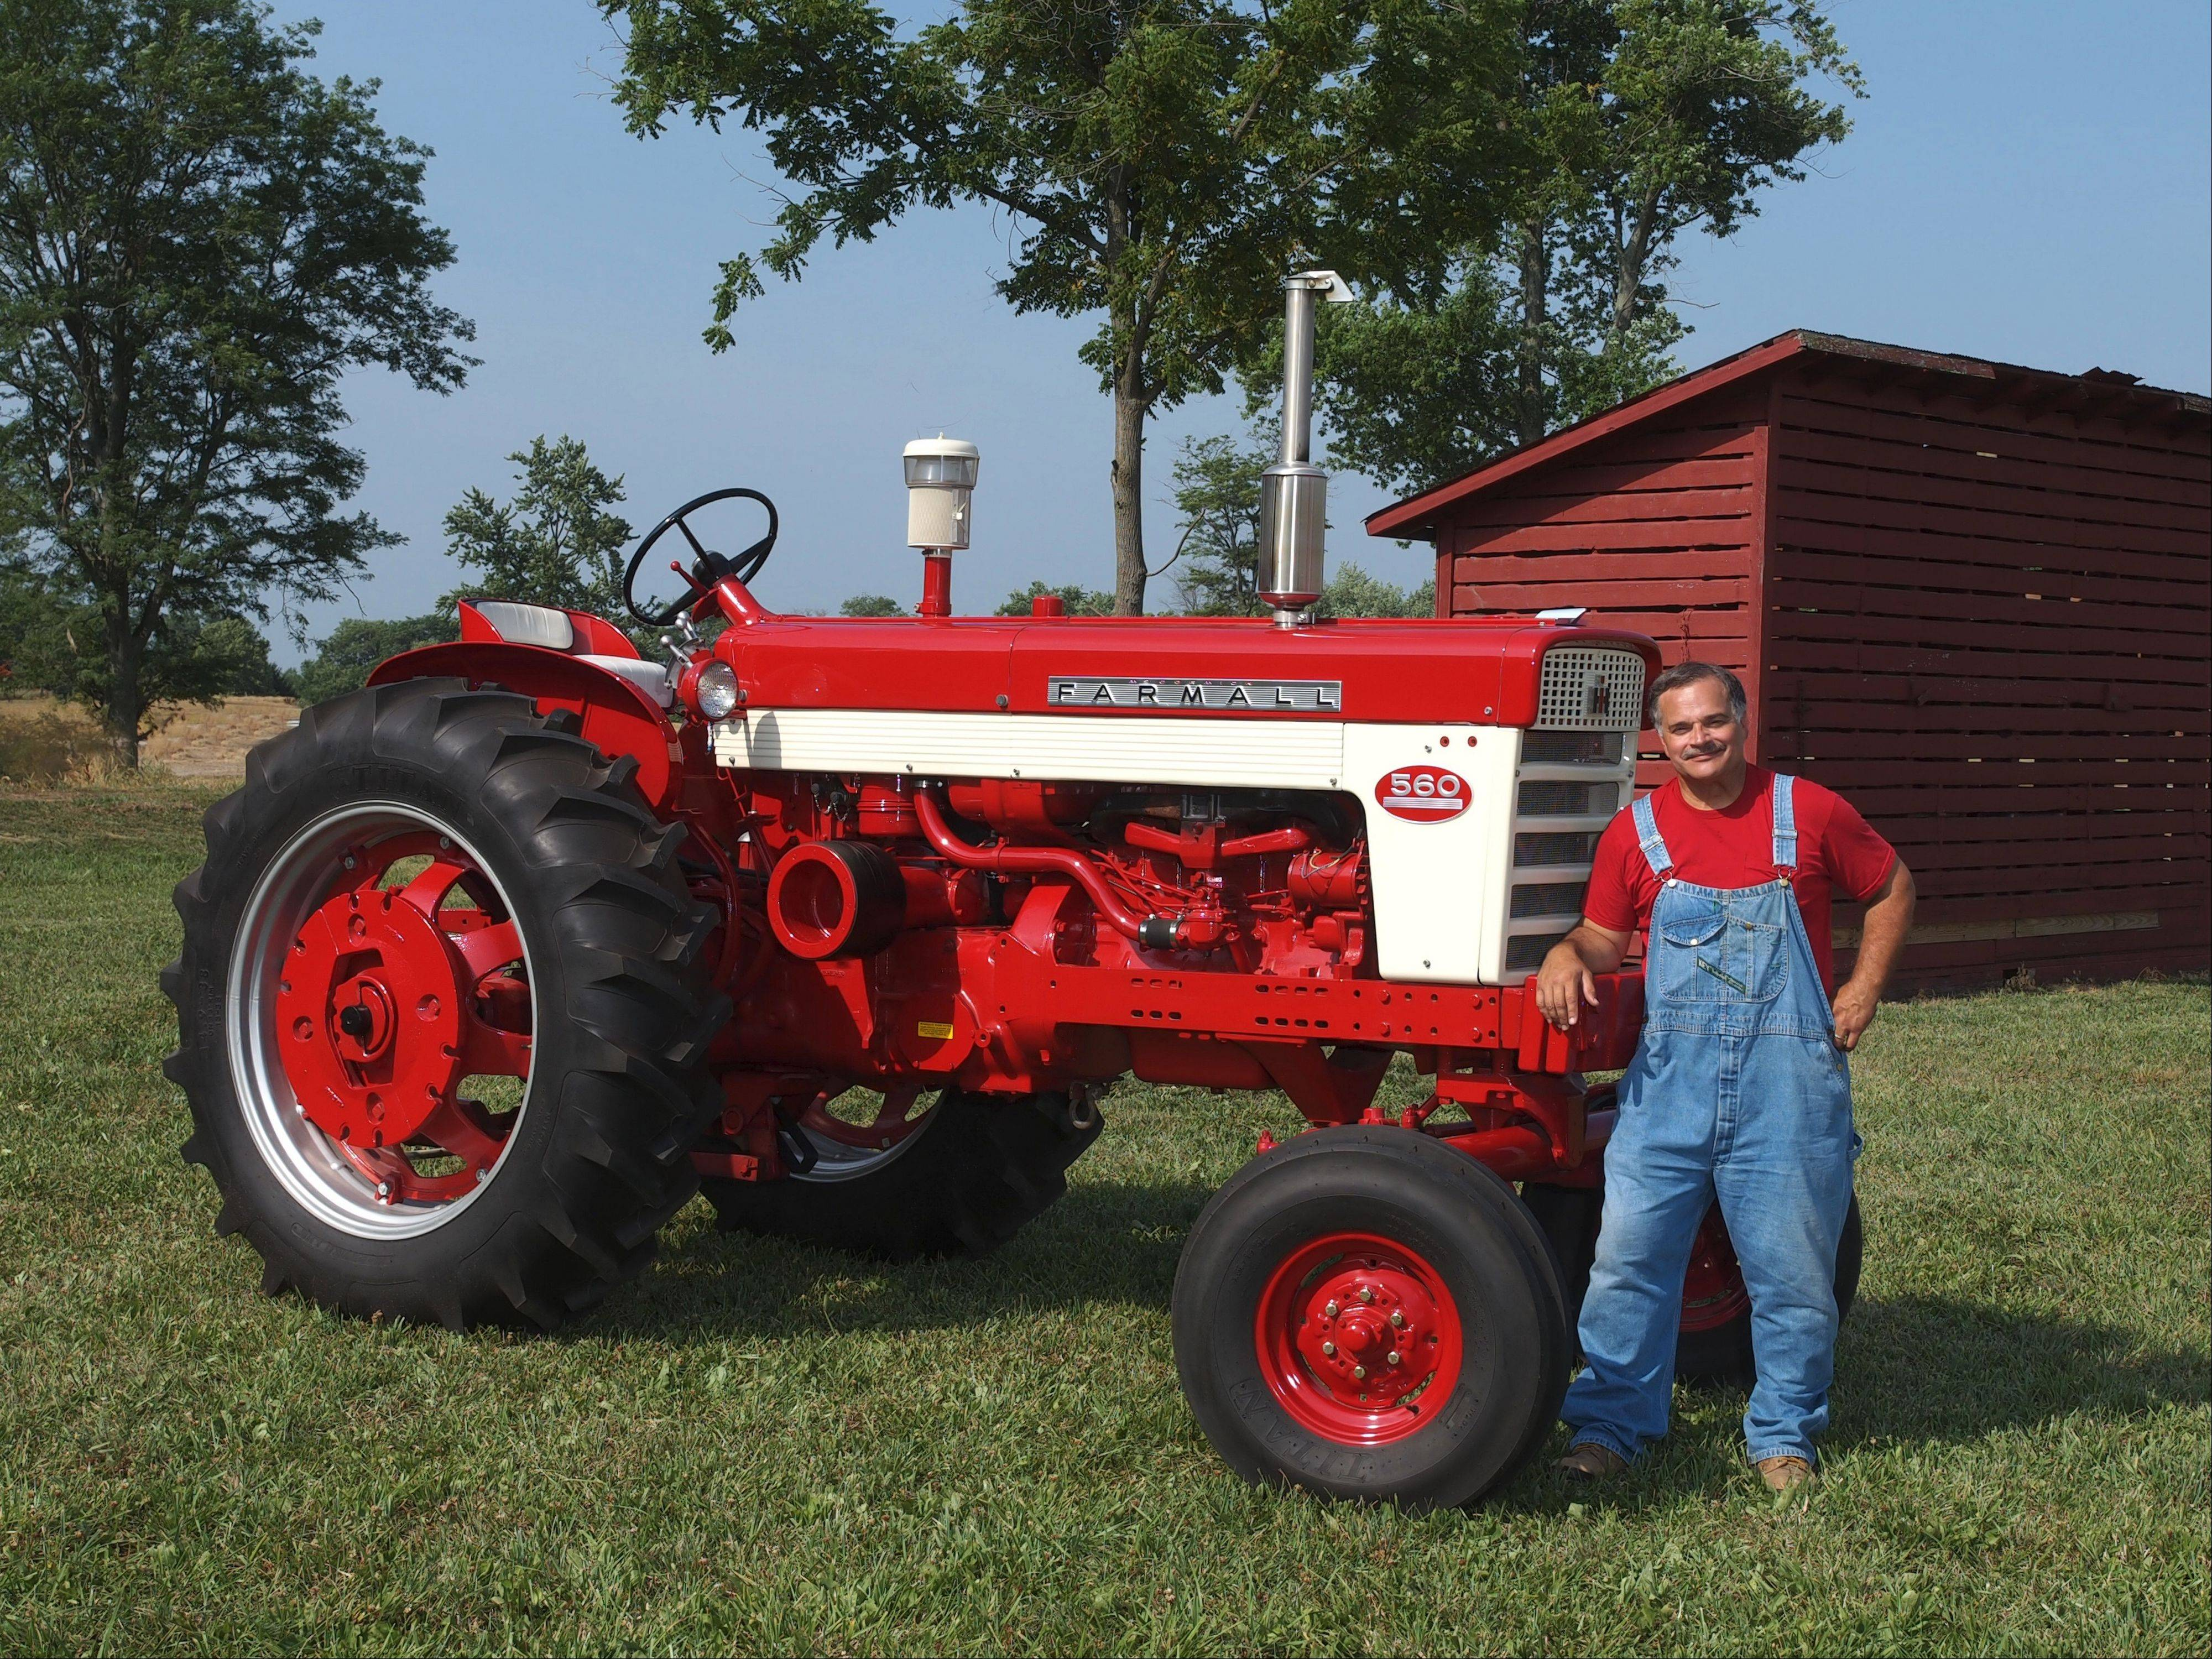 Max Armstrong of Naperville, longtime agricultural broadcaster on WGN Radio and on satellite TV, stands in front of his Farmall 560 tractor made in 1962 by International Harvester.